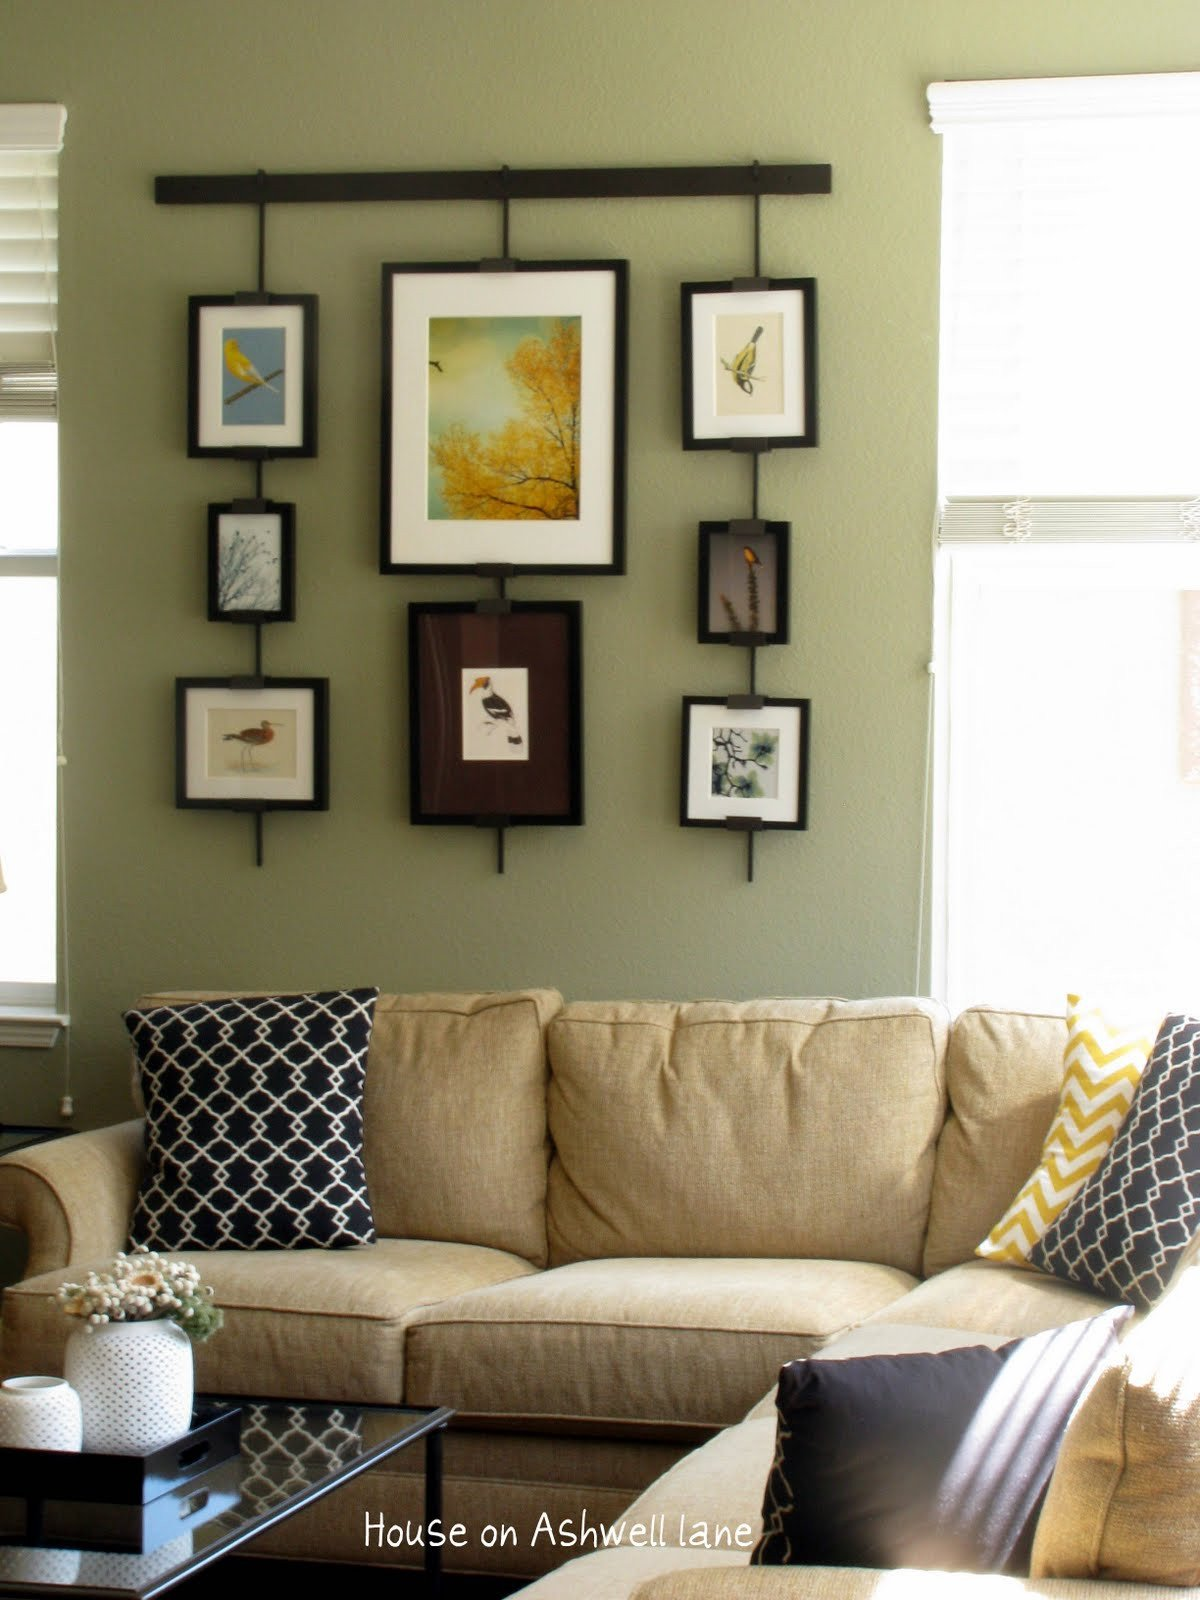 Wall Decor for Family Rooms Lovely House On ashwell Lane Family Room Art Gallery Wall